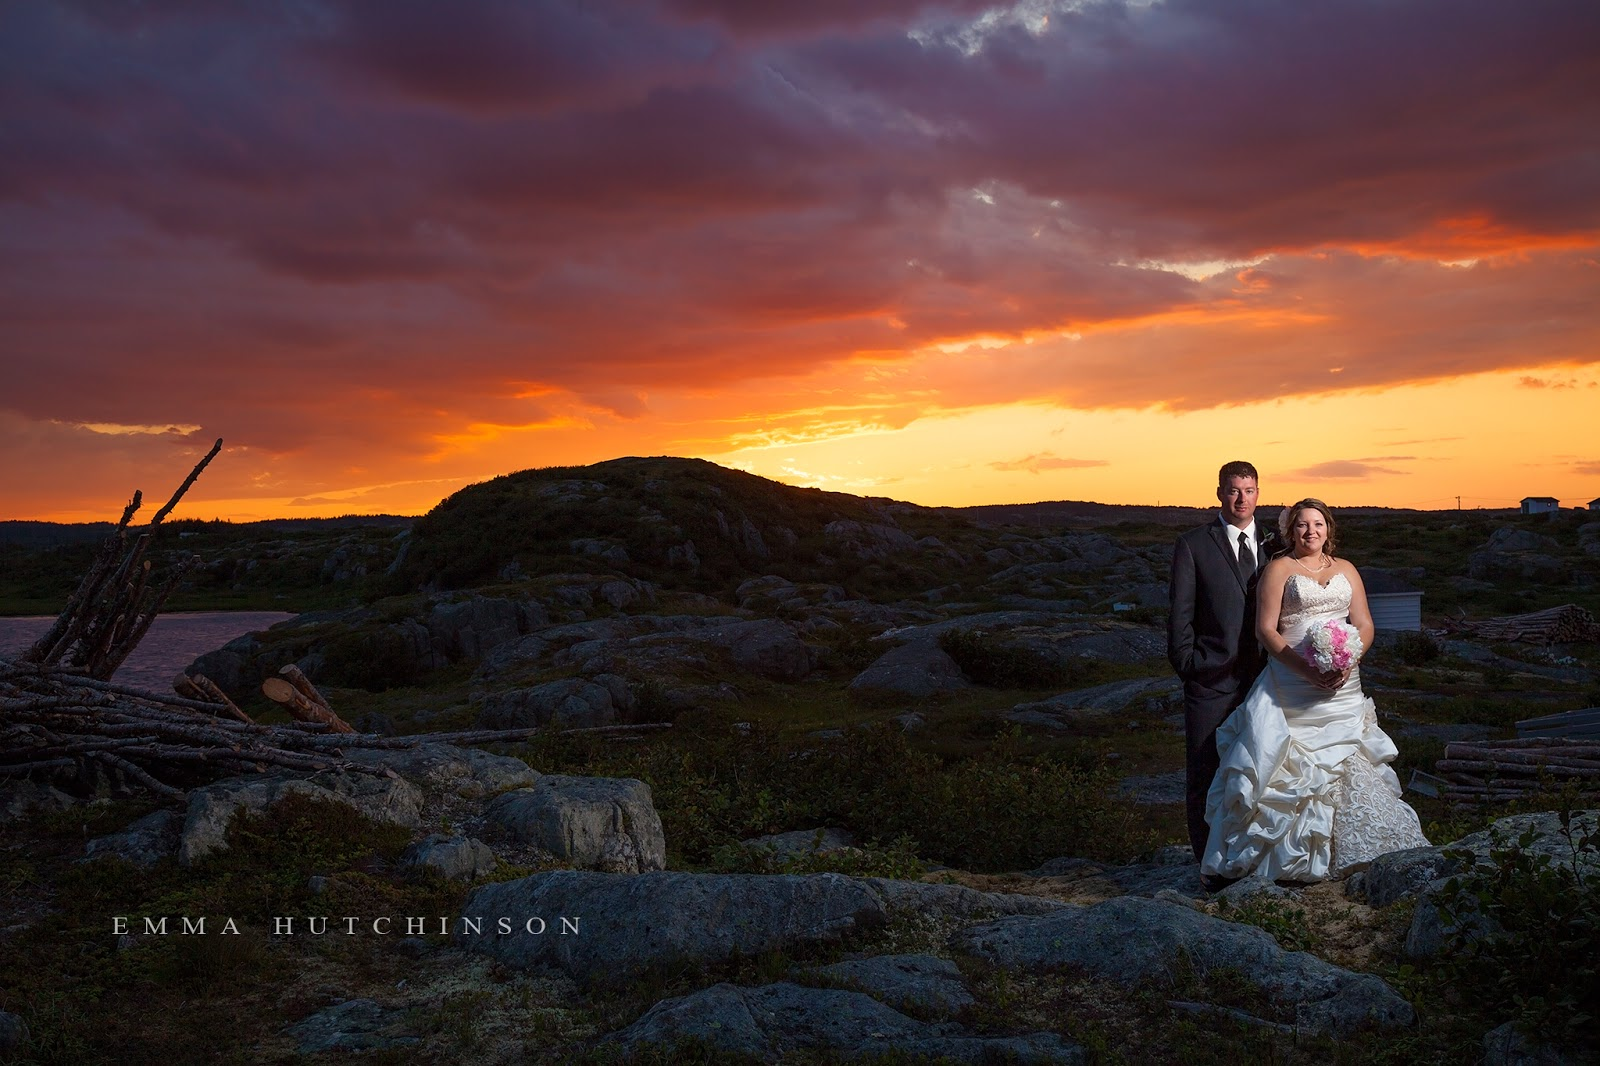 Weddings in Tilting, Fogo Island - amazing sunset in Tilting, NL